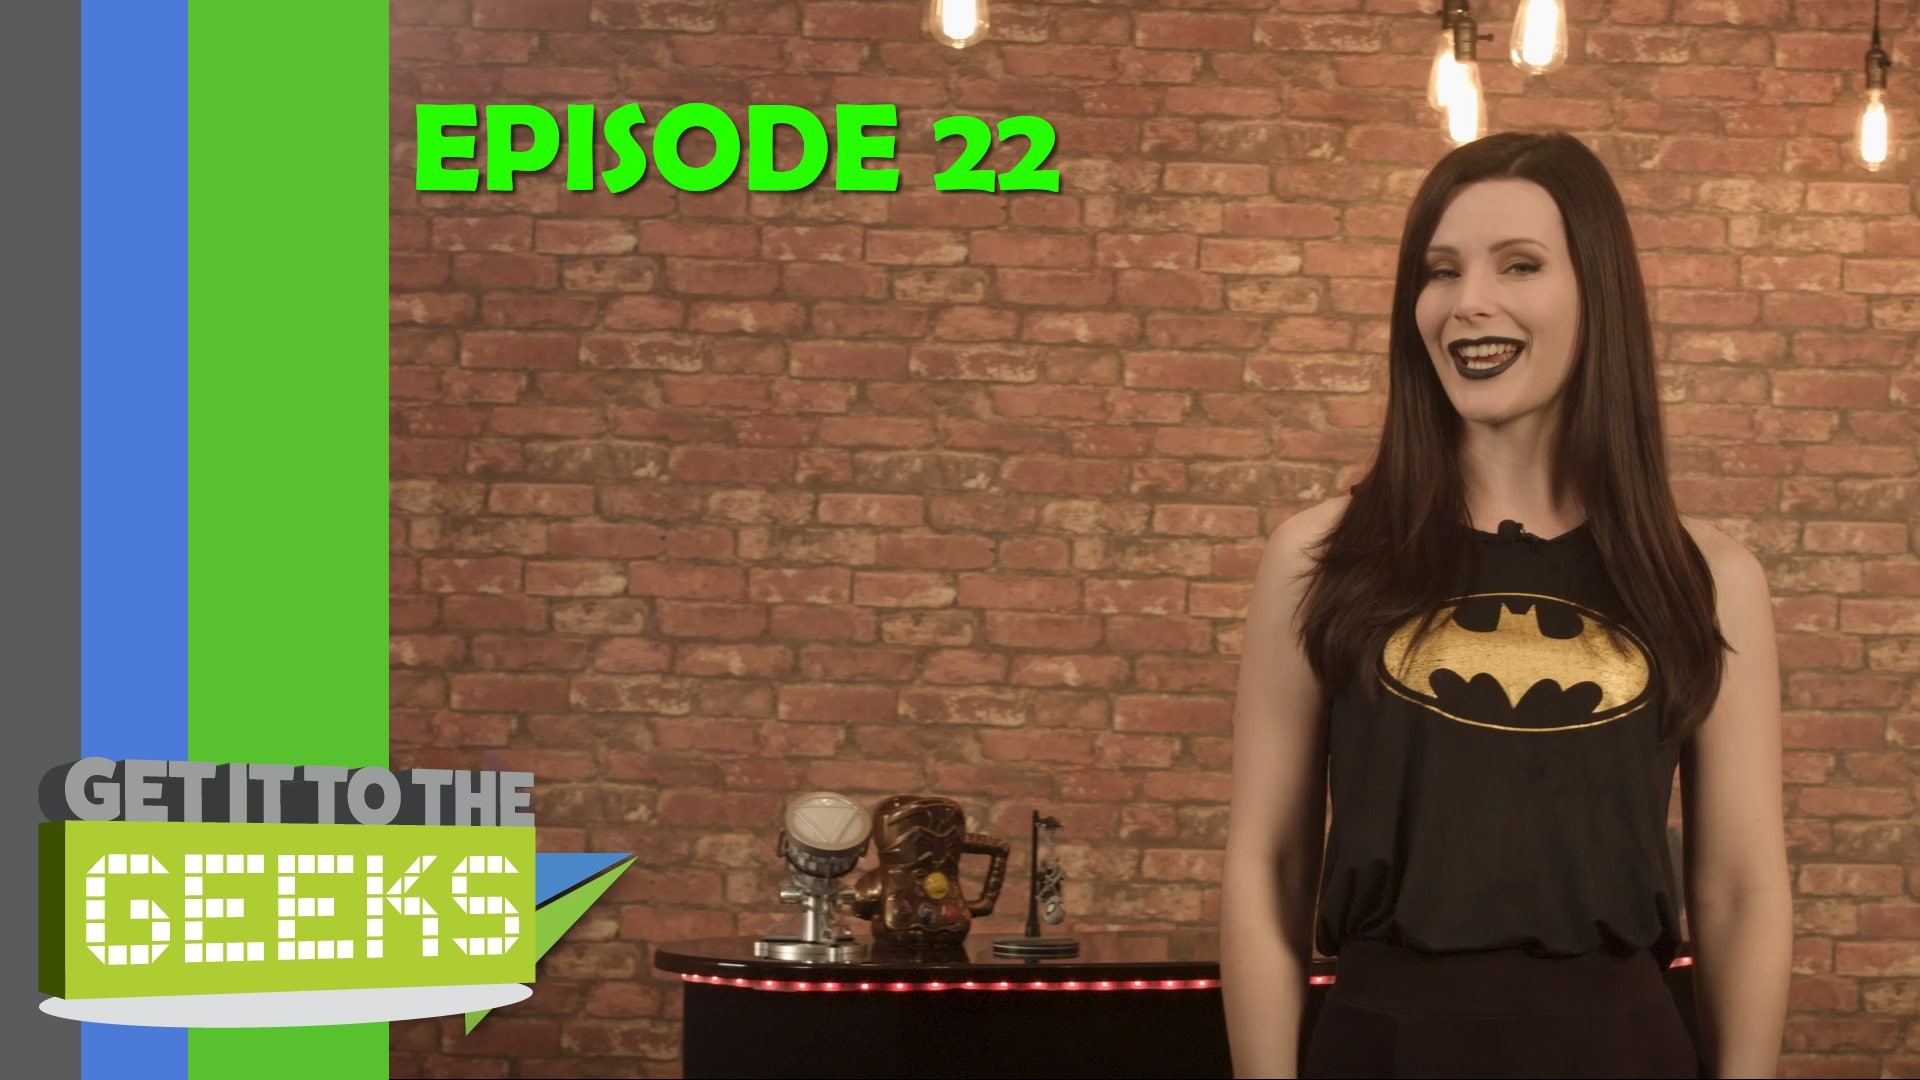 Get It To The Geeks - Episode 22